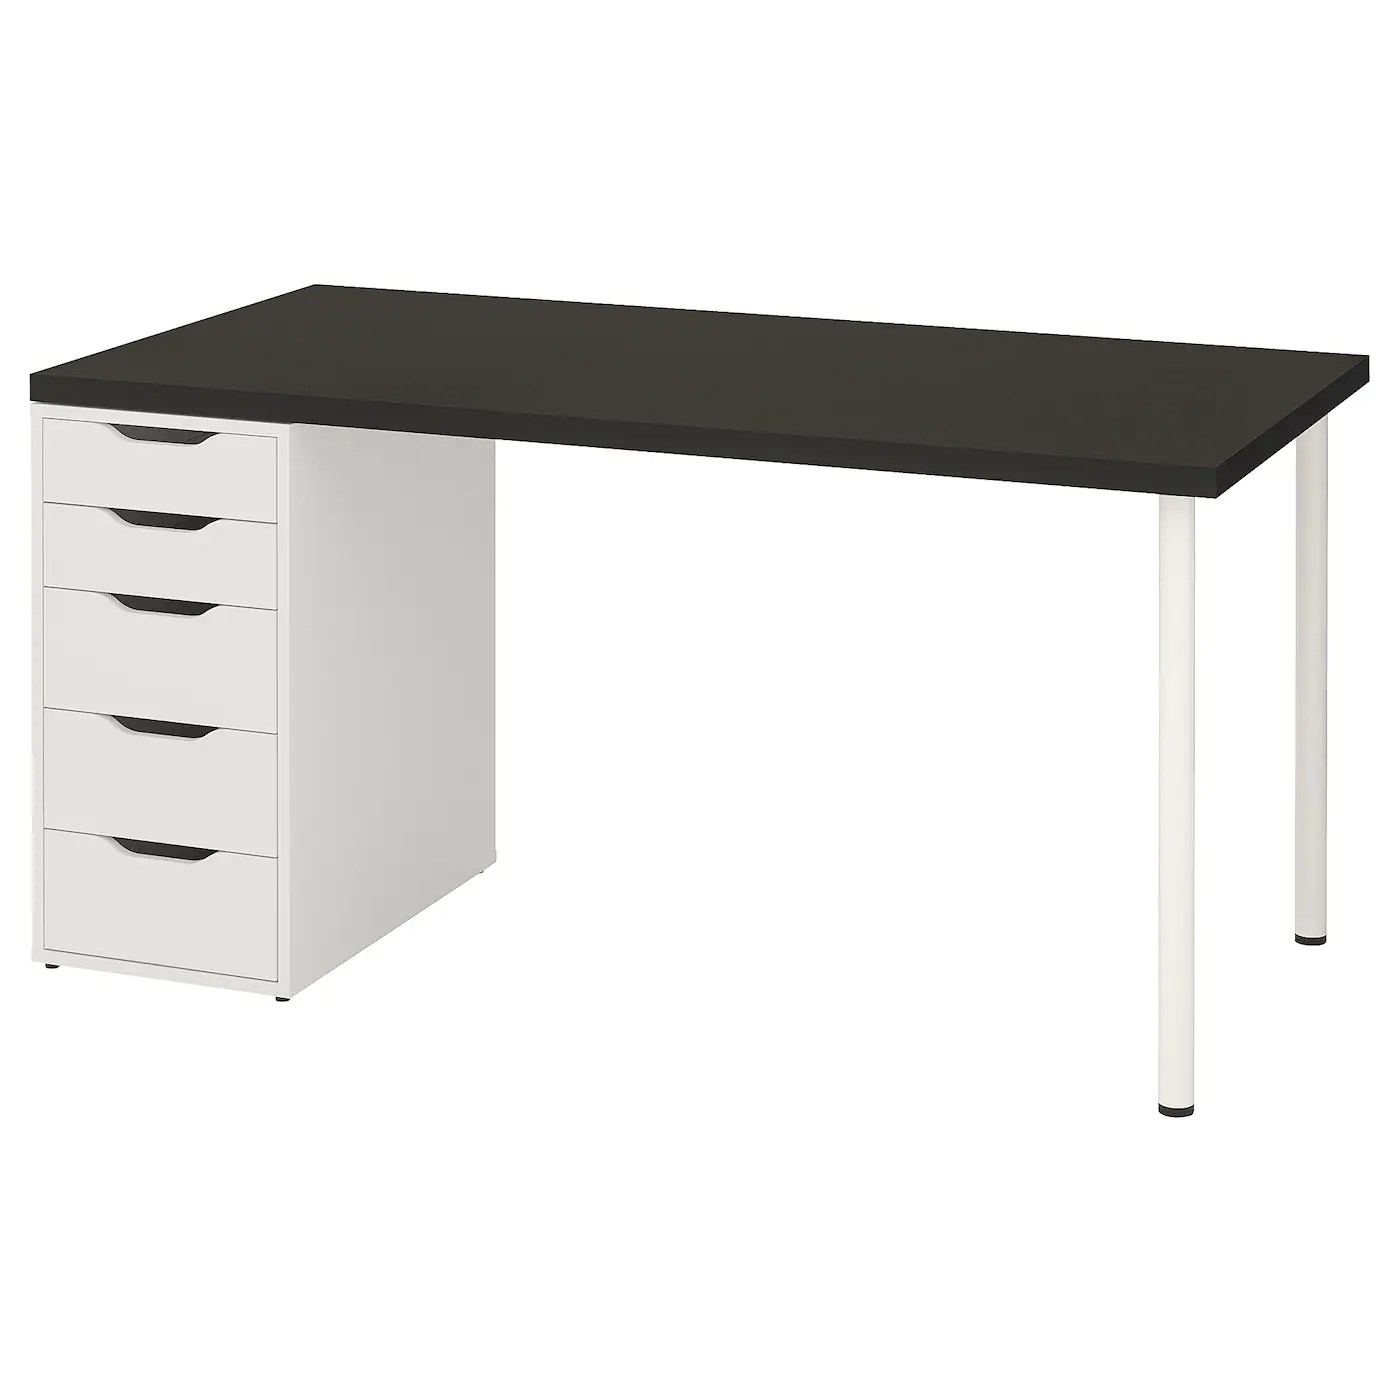 Linnmon Alex Table Black Brown White 59x29 1 2